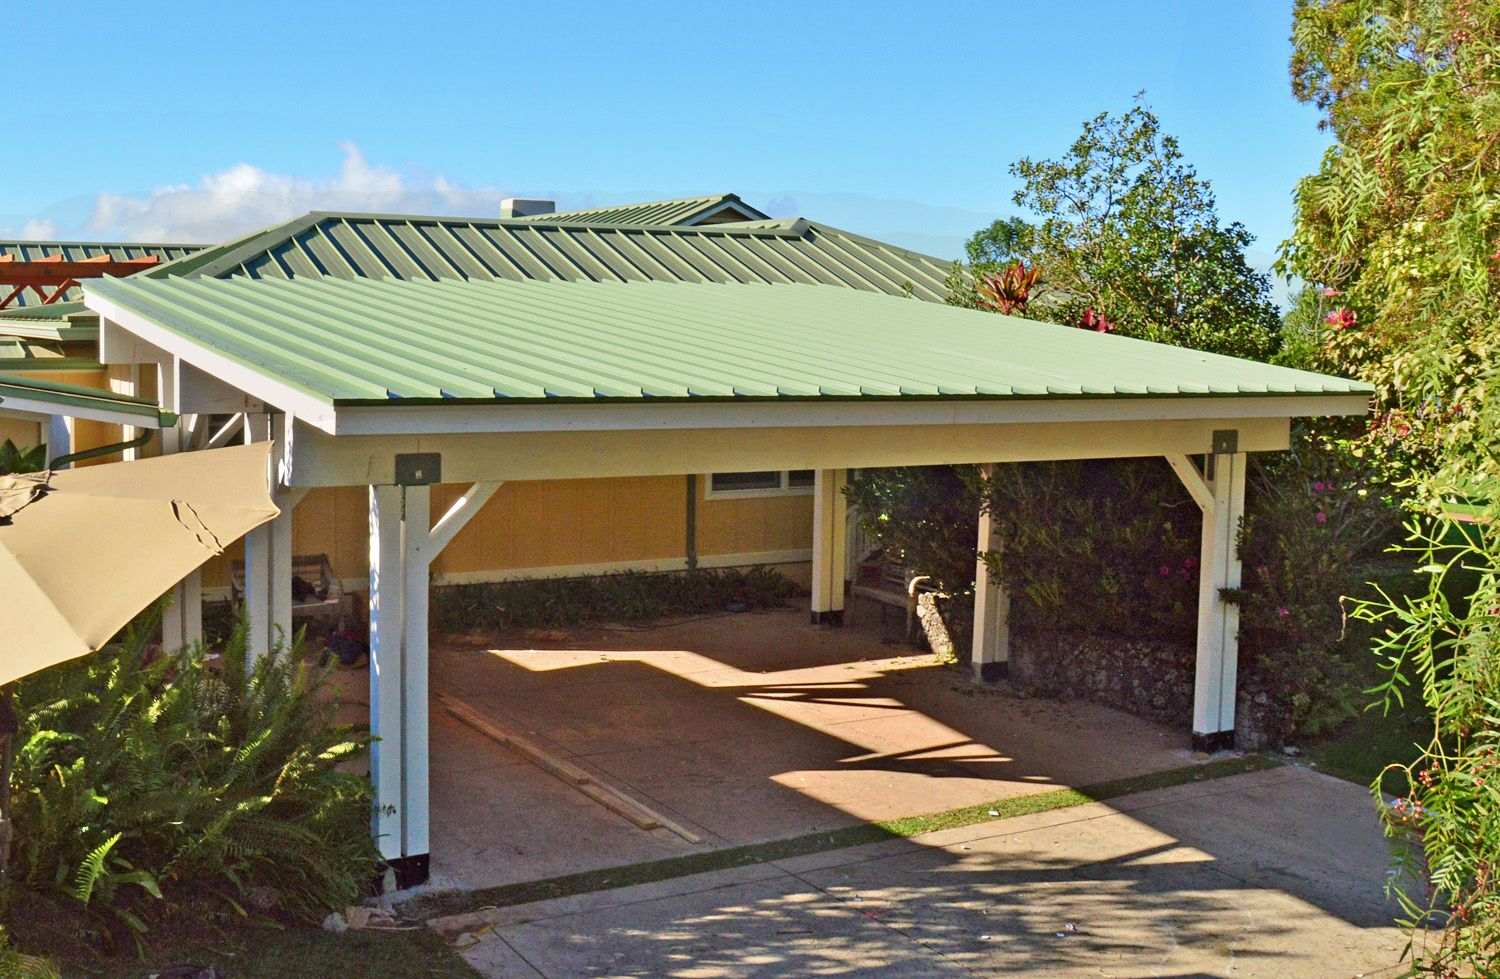 carport pavilion options 21ft standard car depth x 28 ft two cars quantity large redwood no electrical wiring trim 8ft h front post with 9 5 ft h back  [ 1500 x 979 Pixel ]